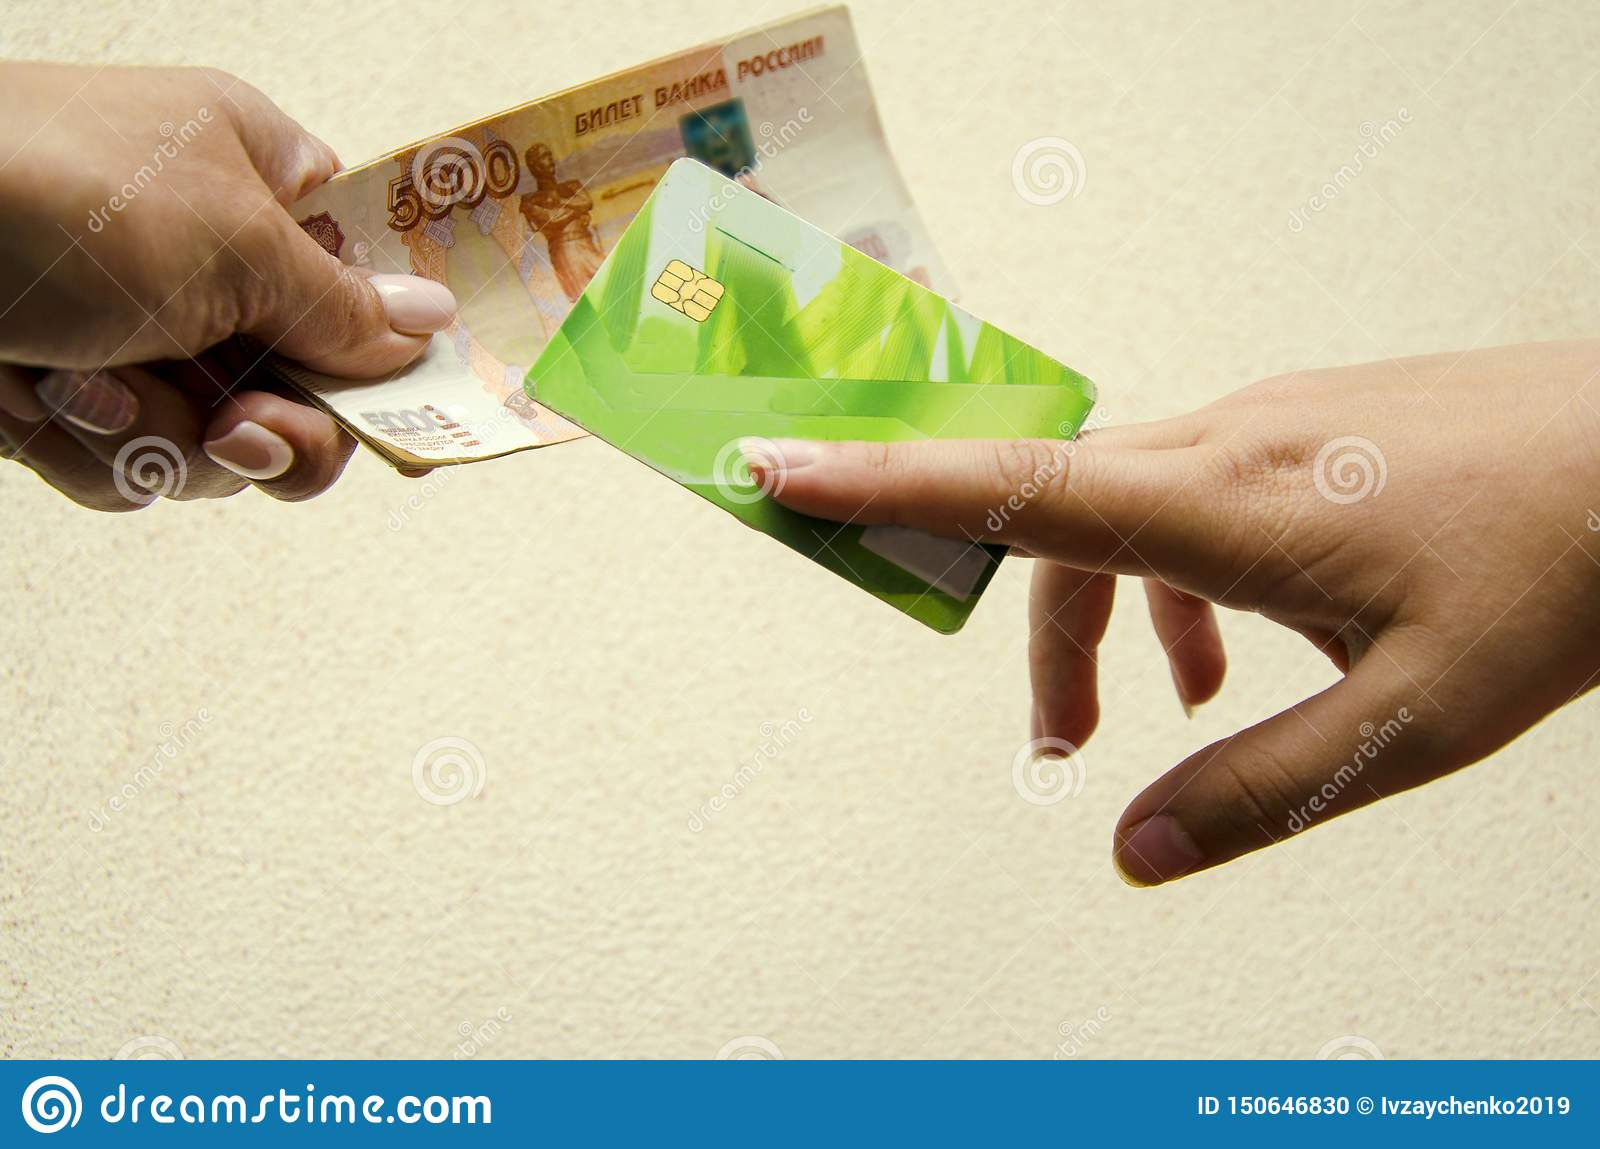 Close up of exchanging or transferring a credit card and banknotes to another person. Banking concept